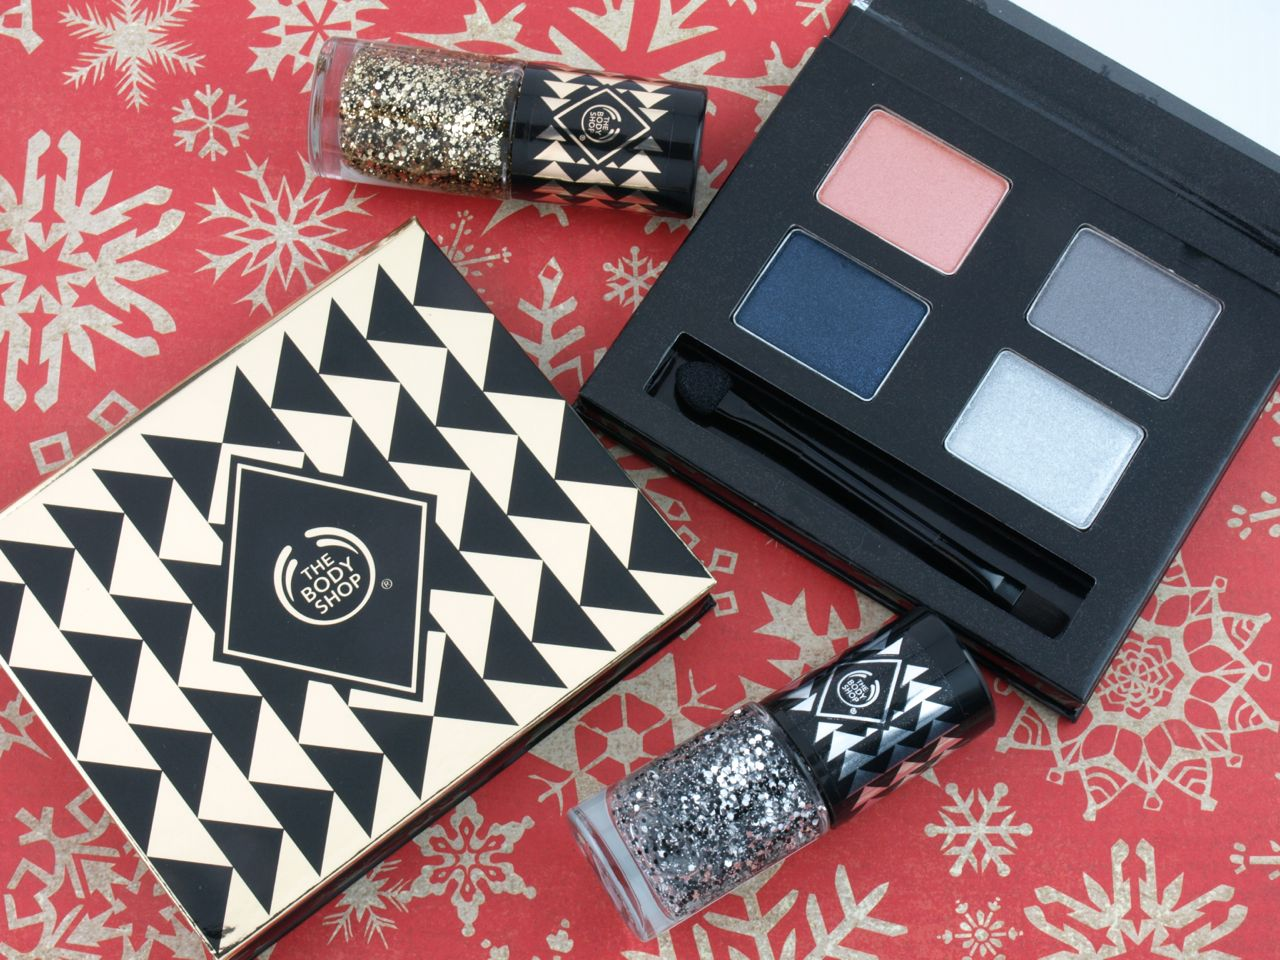 The Body Shop Holiday 2015 Winter Eyeshadow Palettes Nail Polishes Review And Swatches The Happy Sloths Beauty Makeup And Skincare Blog With Reviews And Swatches